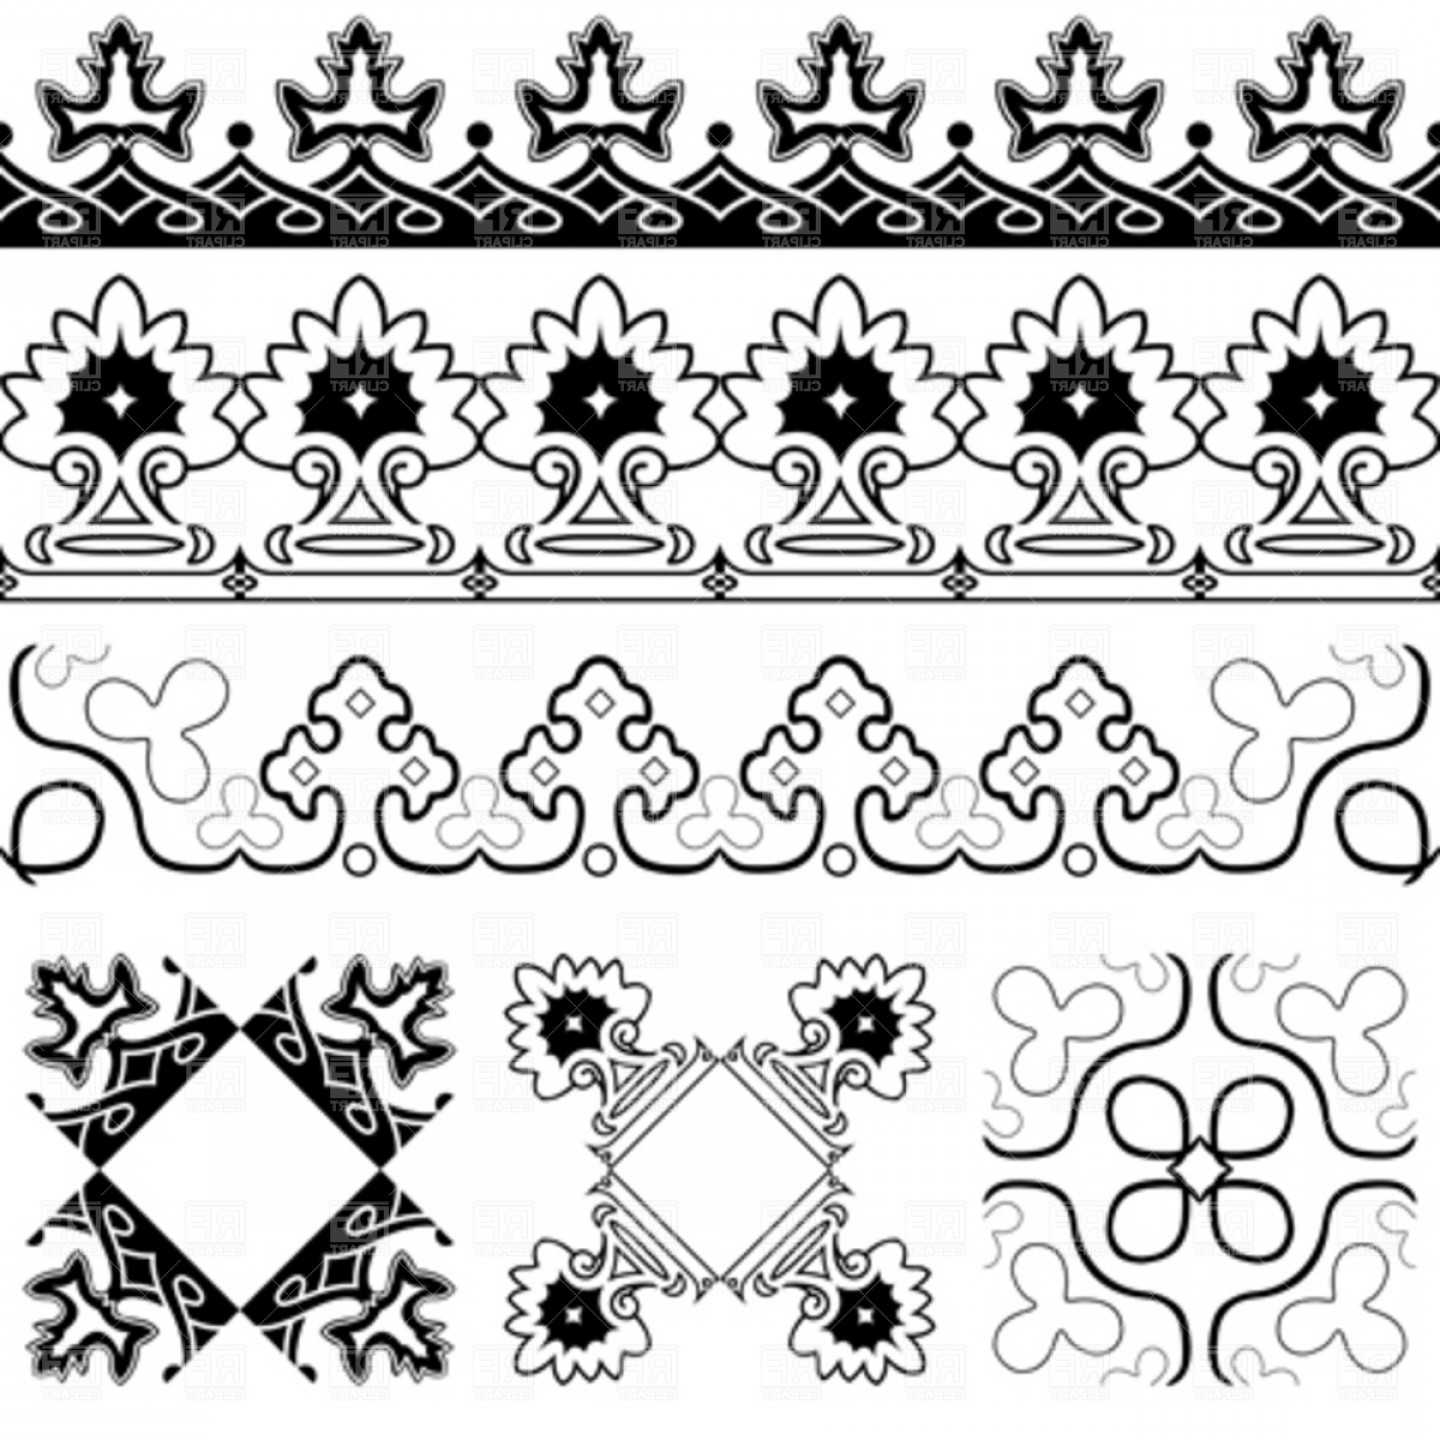 Free EPS Vector Art: Symmetrical Design Elements Vector Clipart